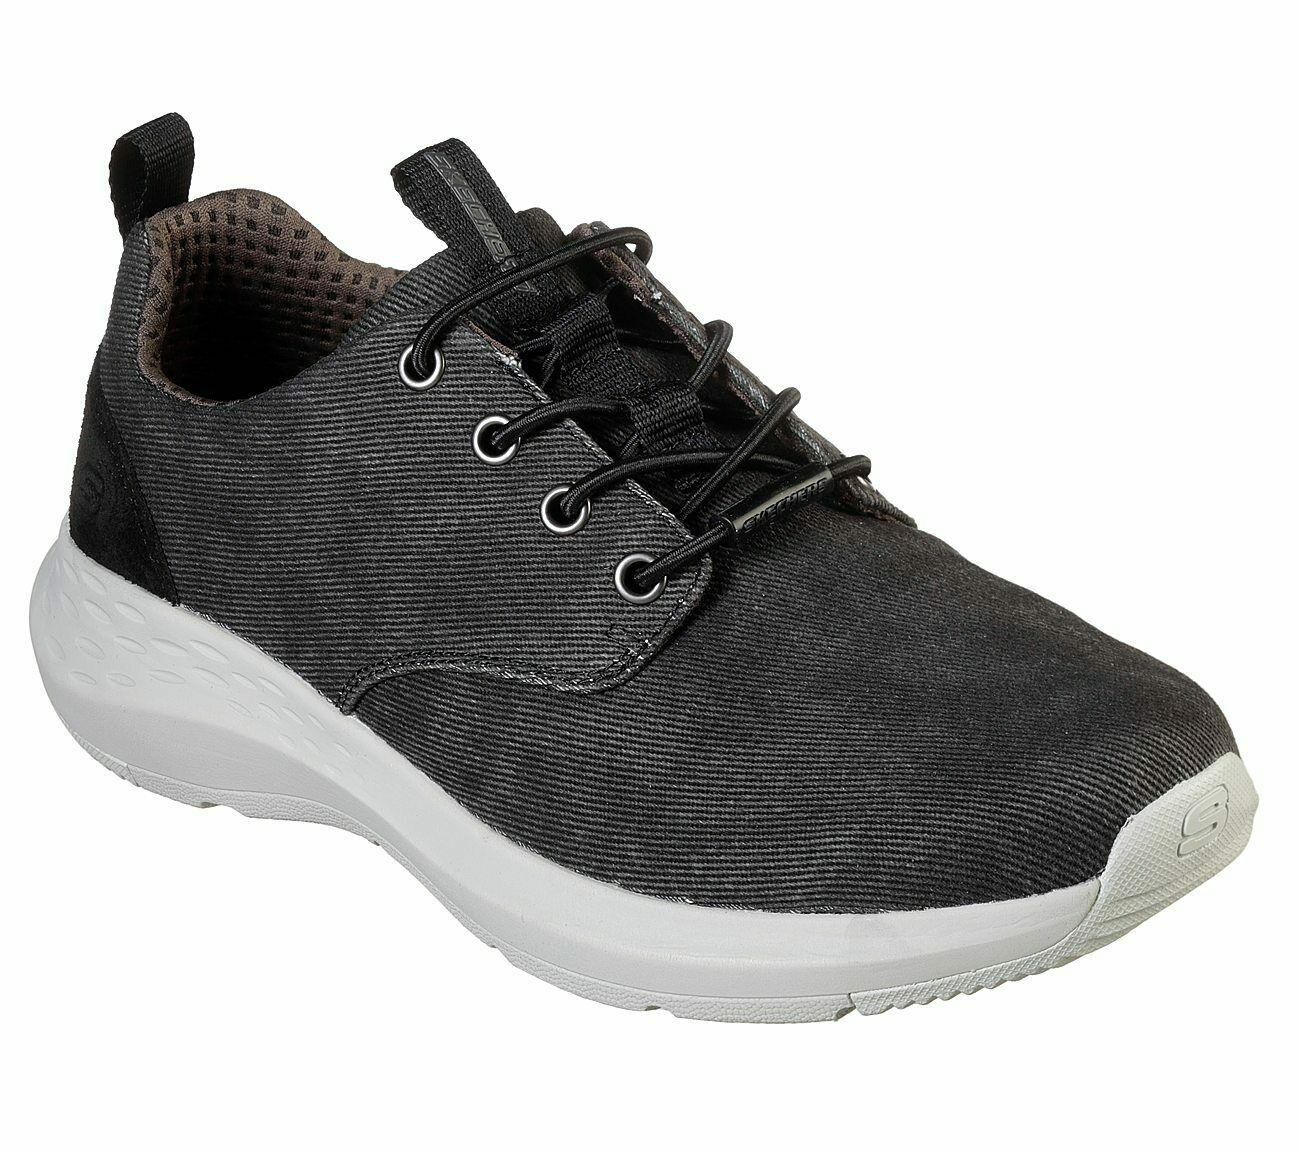 Skechers Extra Wide Fit Black shoes Men Memory Foam Casual Canvas Comfort 66005